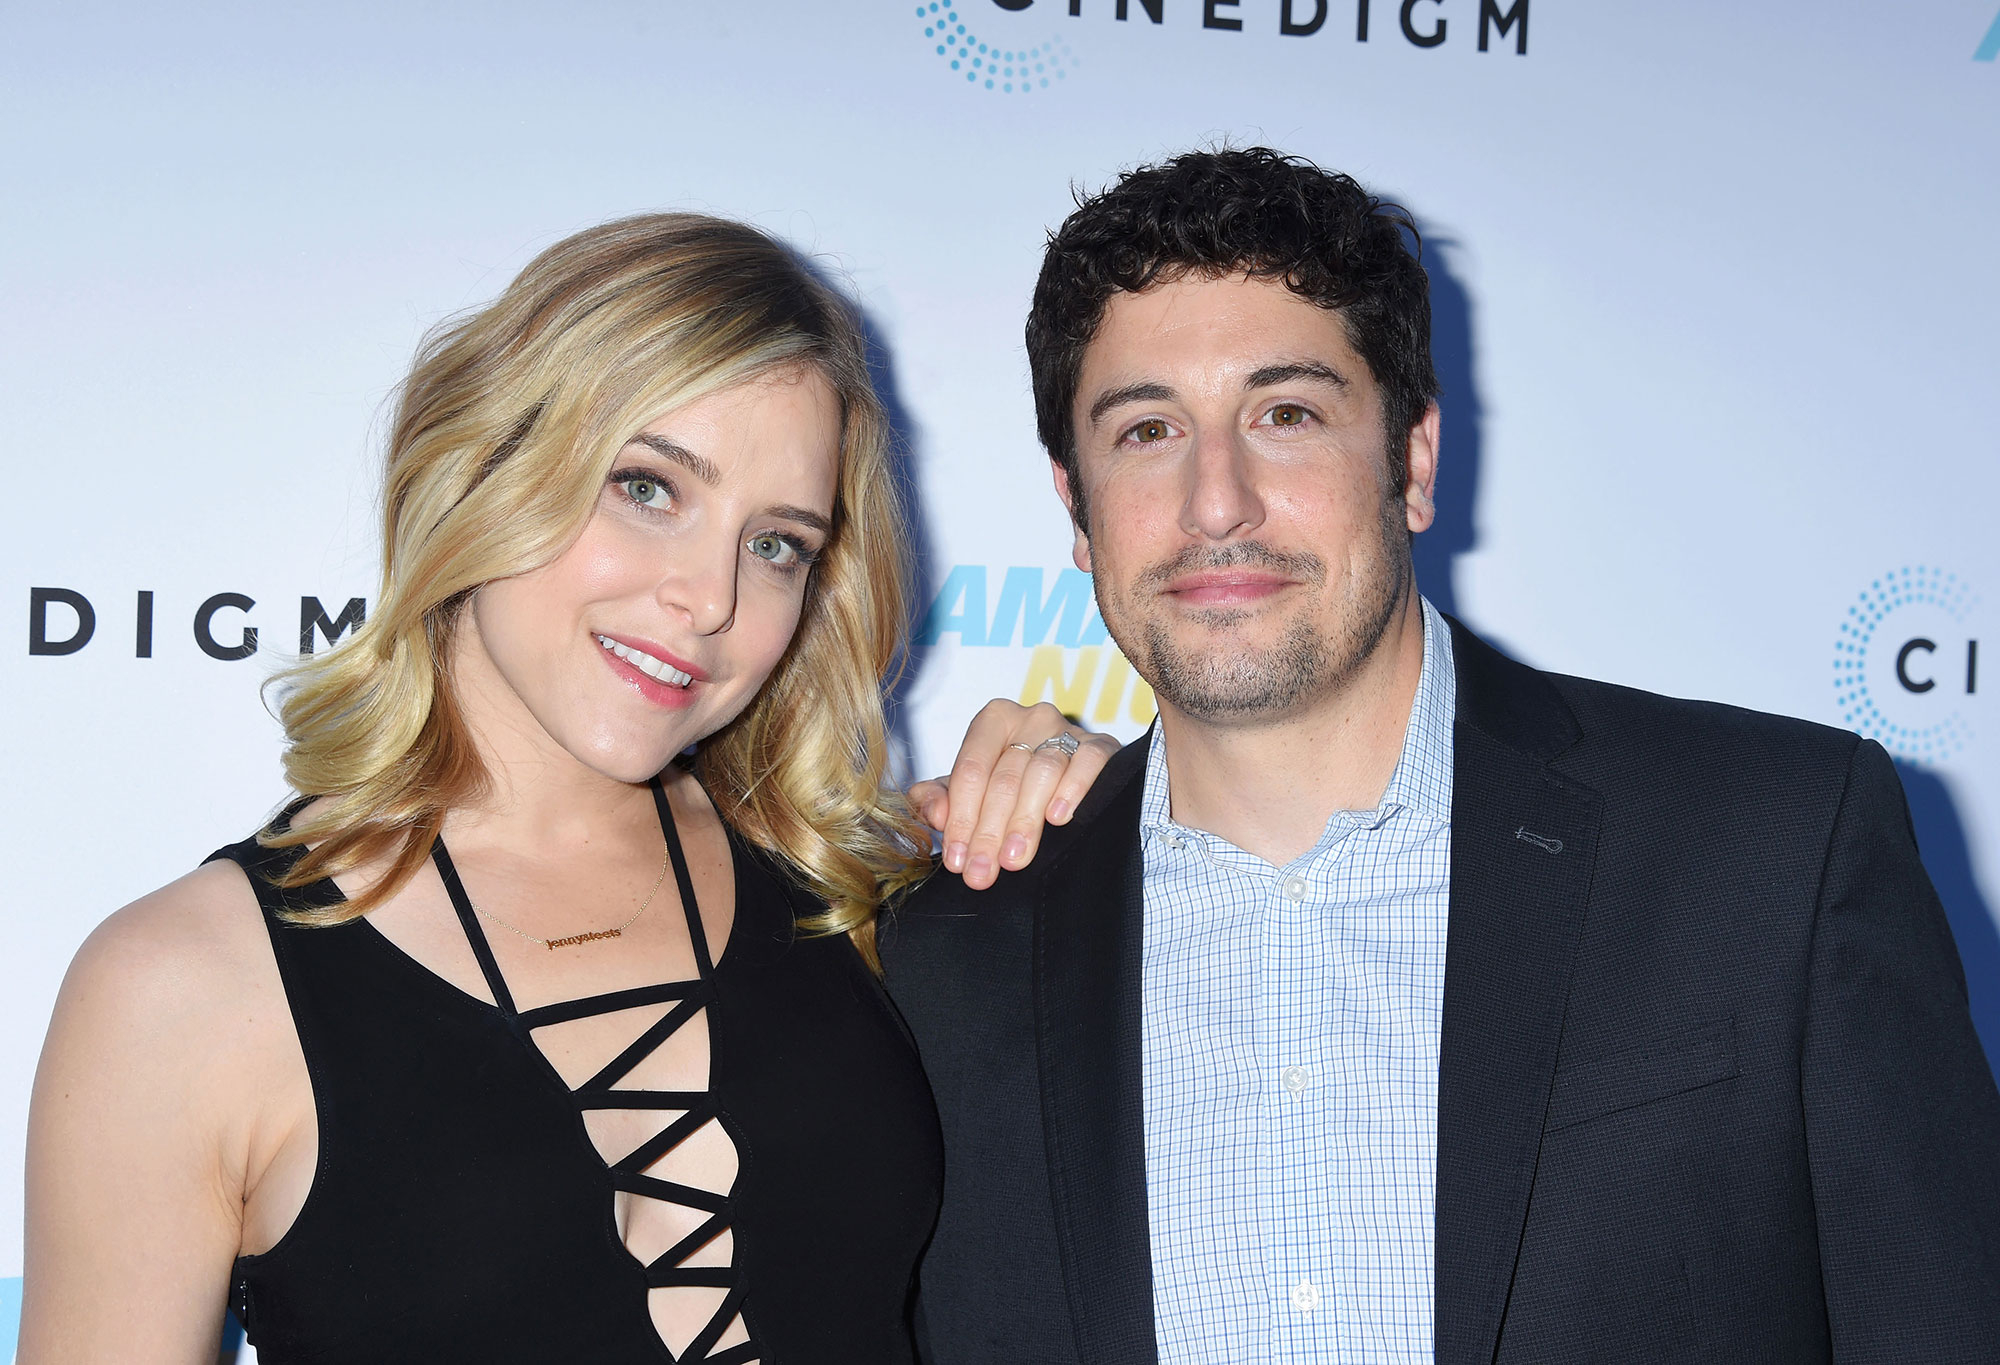 Bikini Jenny Mollen naked (72 foto and video), Topless, Cleavage, Boobs, cleavage 2020